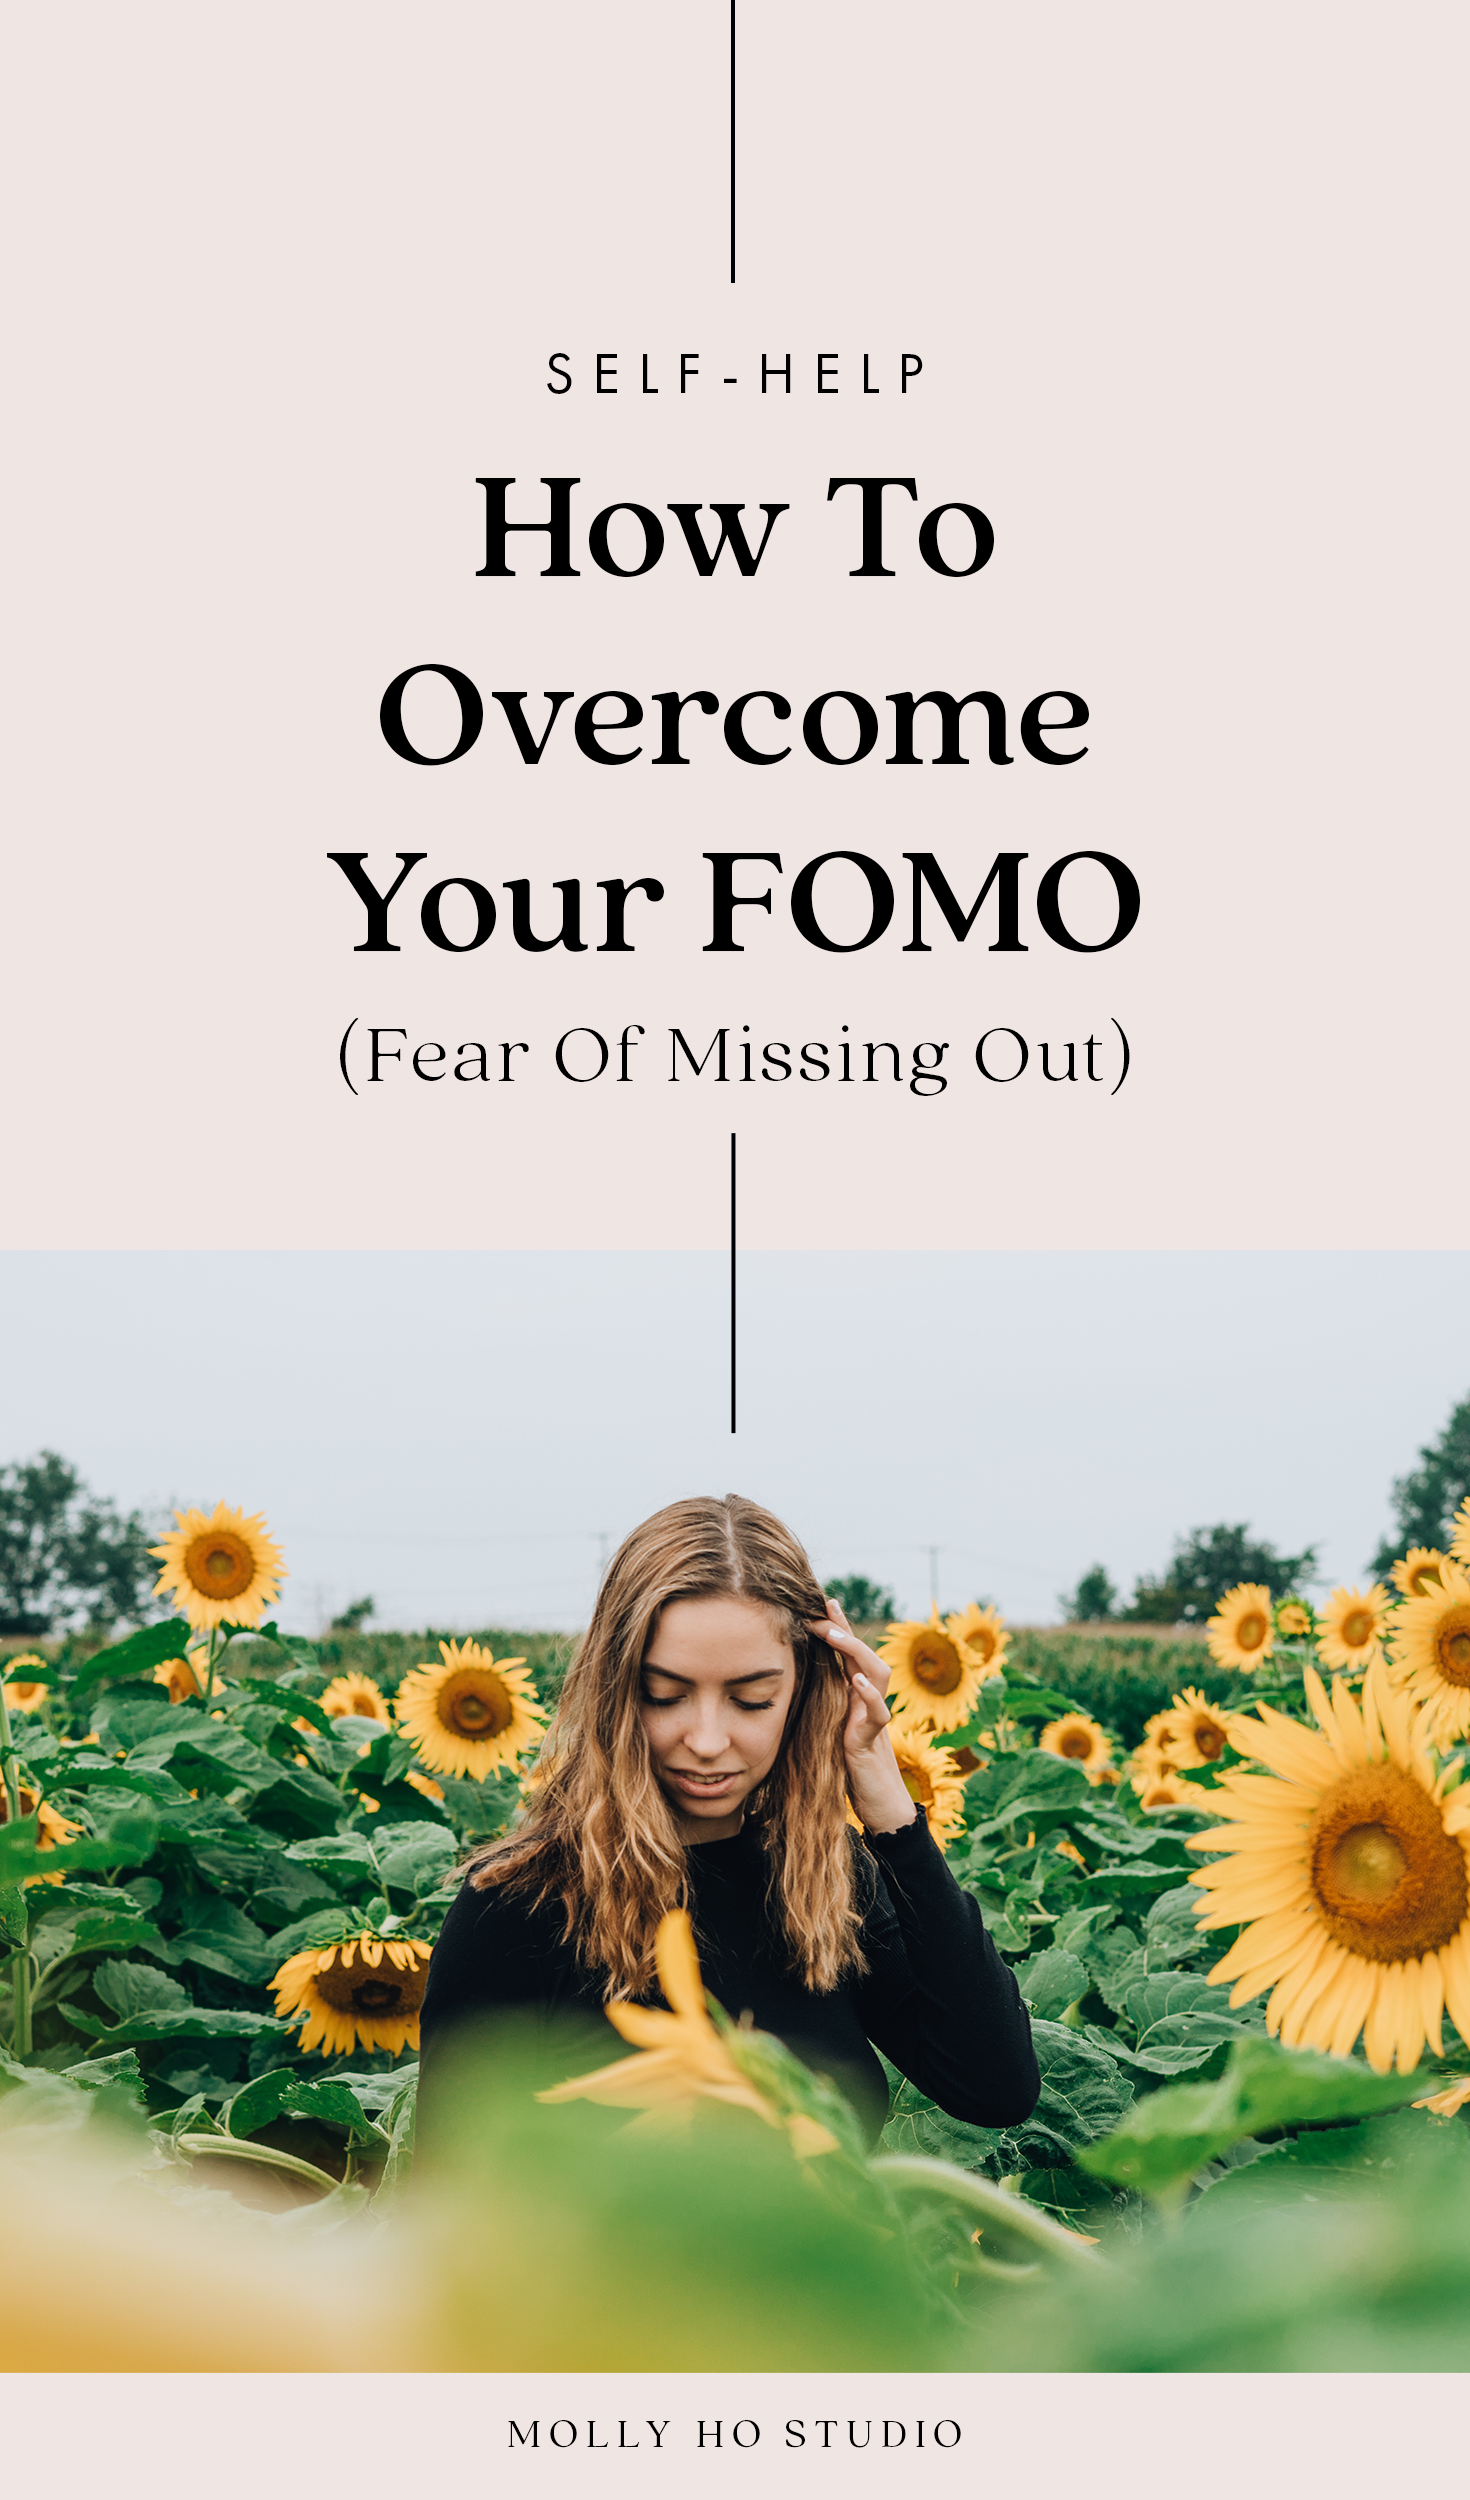 How To Overcome Your FOMO Or Fear Of Missing Out | Personal Growth and Development | Self-Love | Self-Care | How To Become More Mindful | Prioritize Your Life | Doing What Matters To You | Self-Improvement | How To Improve Your Life | How To Take Better Care Of Yourself |How To Embrace Being Yourself | Molly Ho Studio